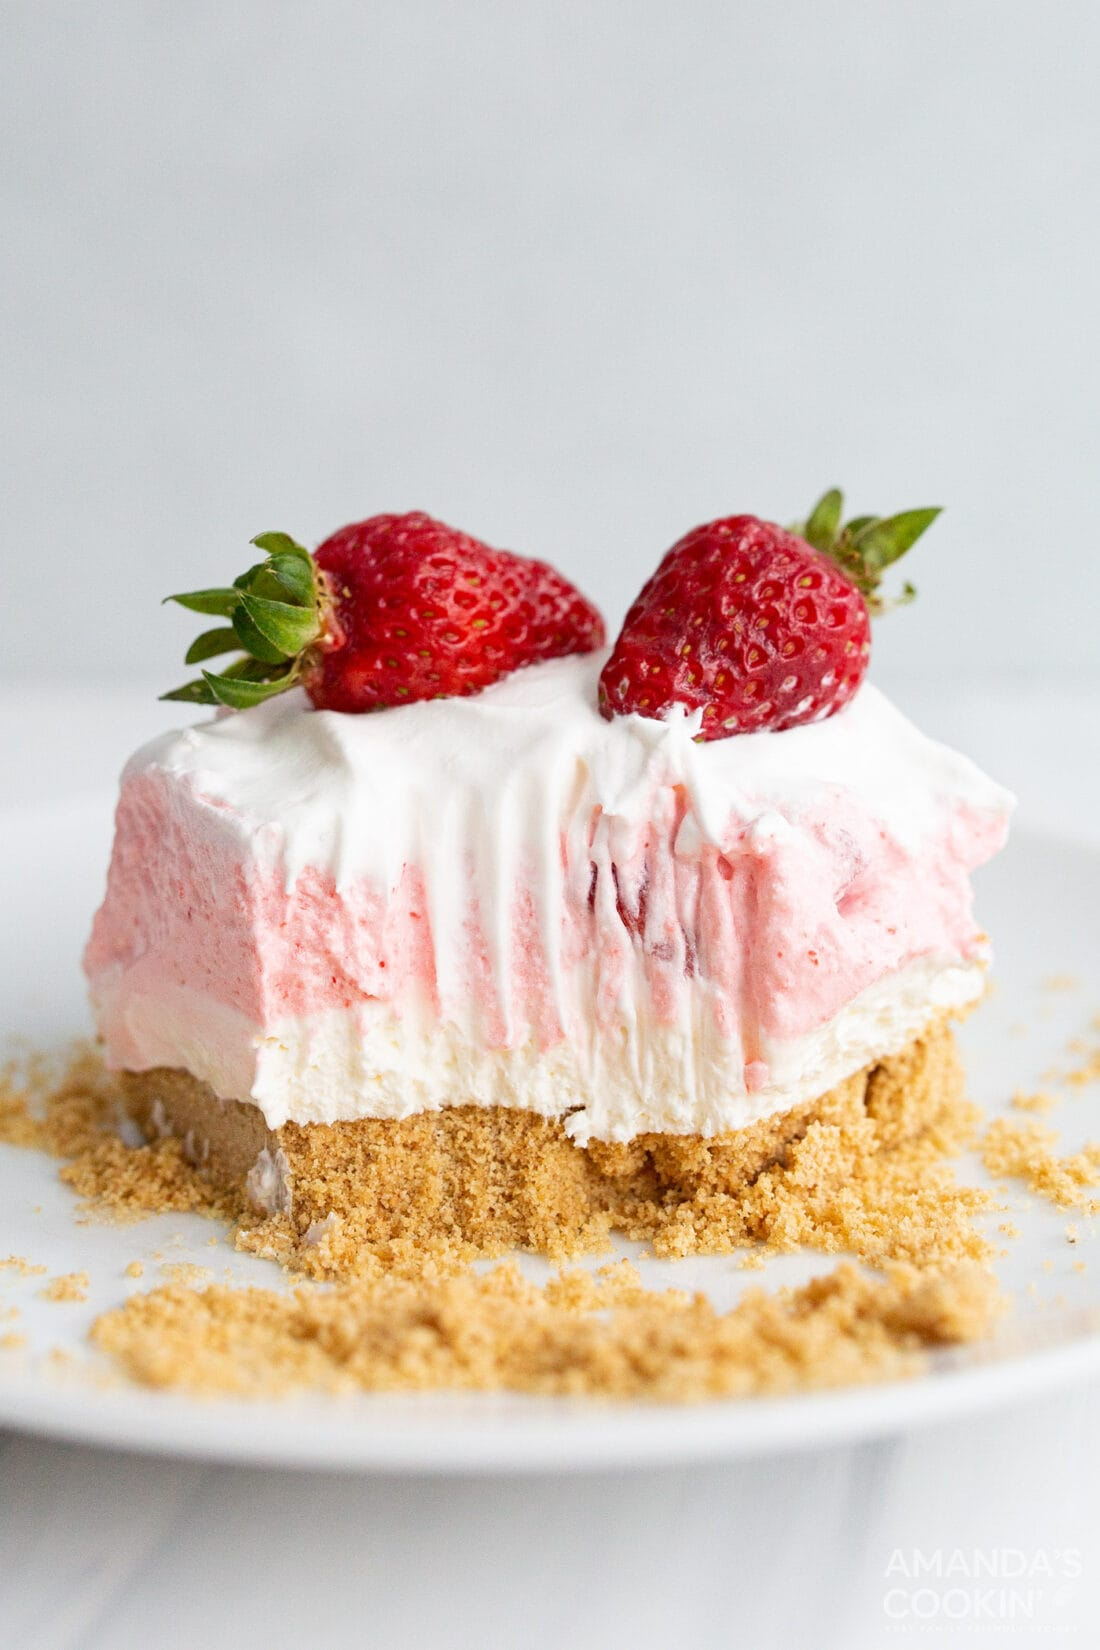 slice of Strawberry Lasagna with bites removed